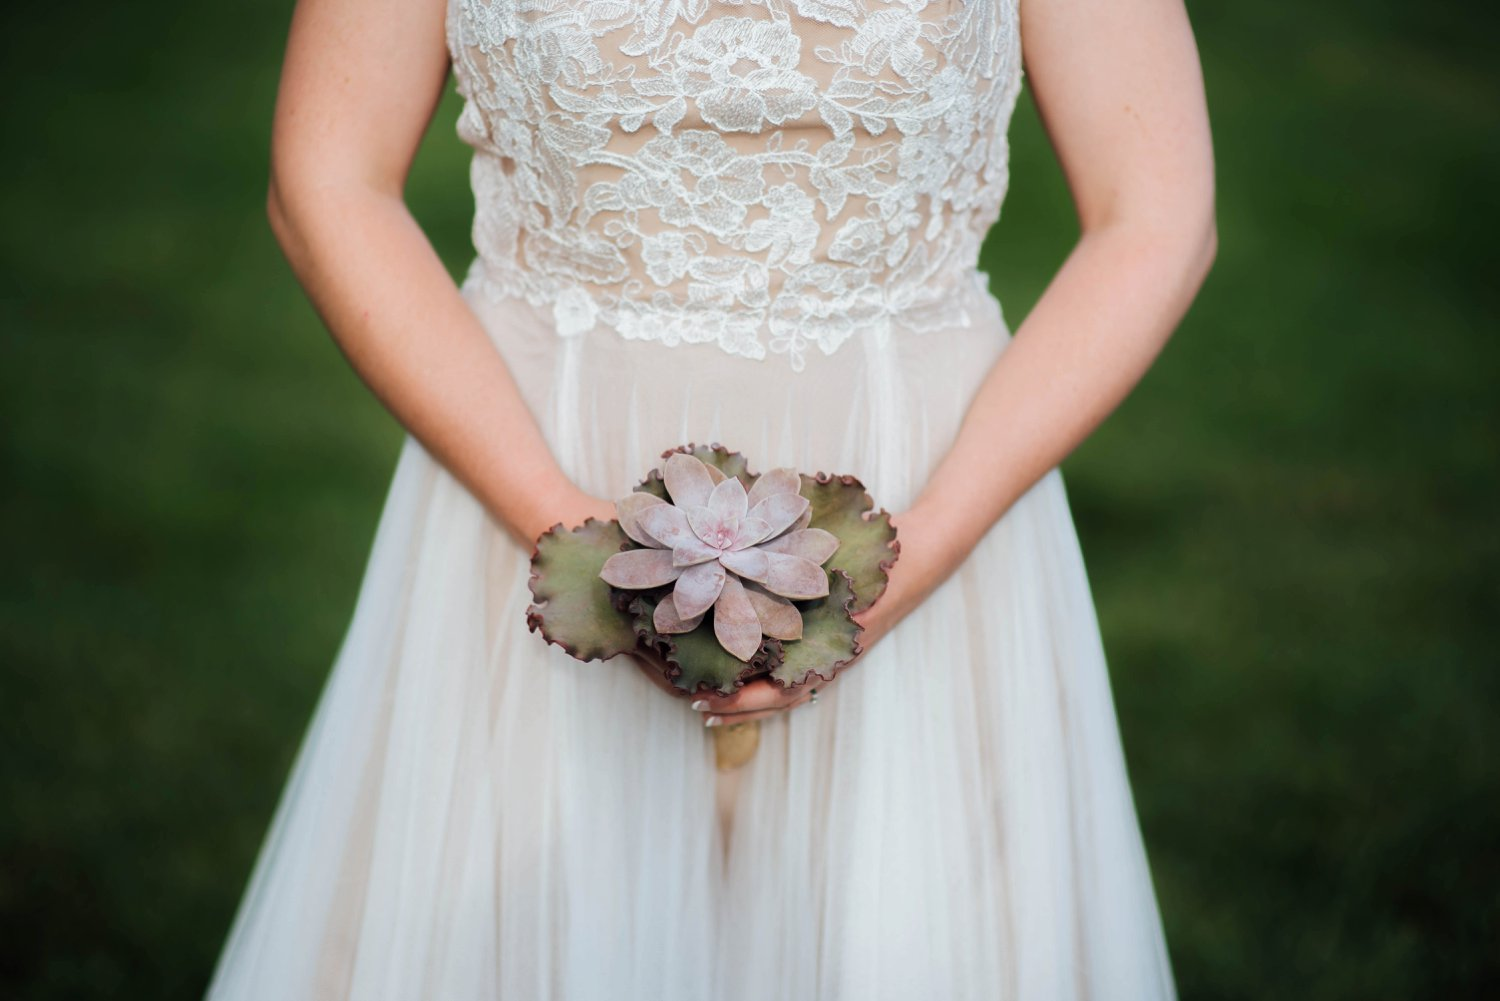 This light pink bouquet is so unique- and goes so well with her lace bodice dress.Photo by Maddie Mae Photography